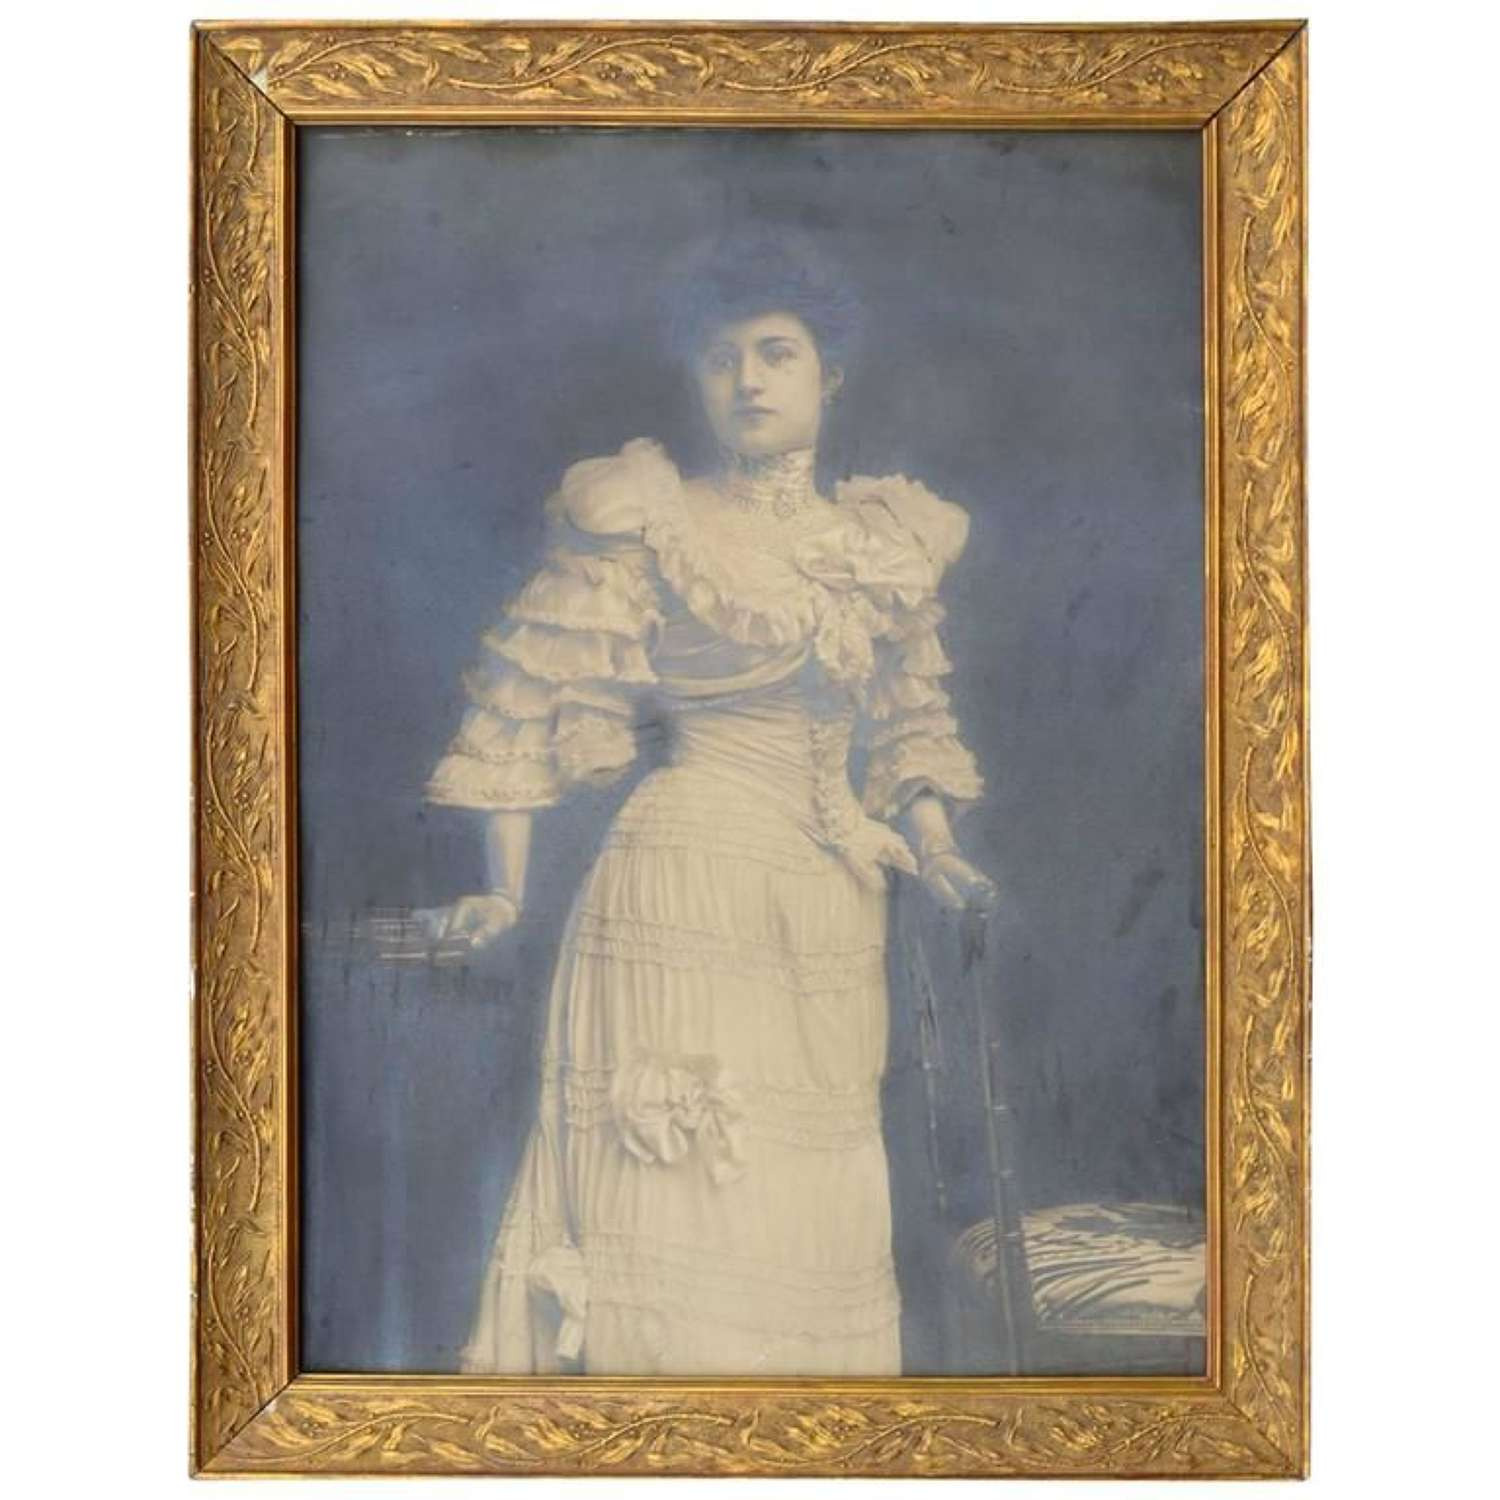 Large Photograph of an Early 20th century debutante